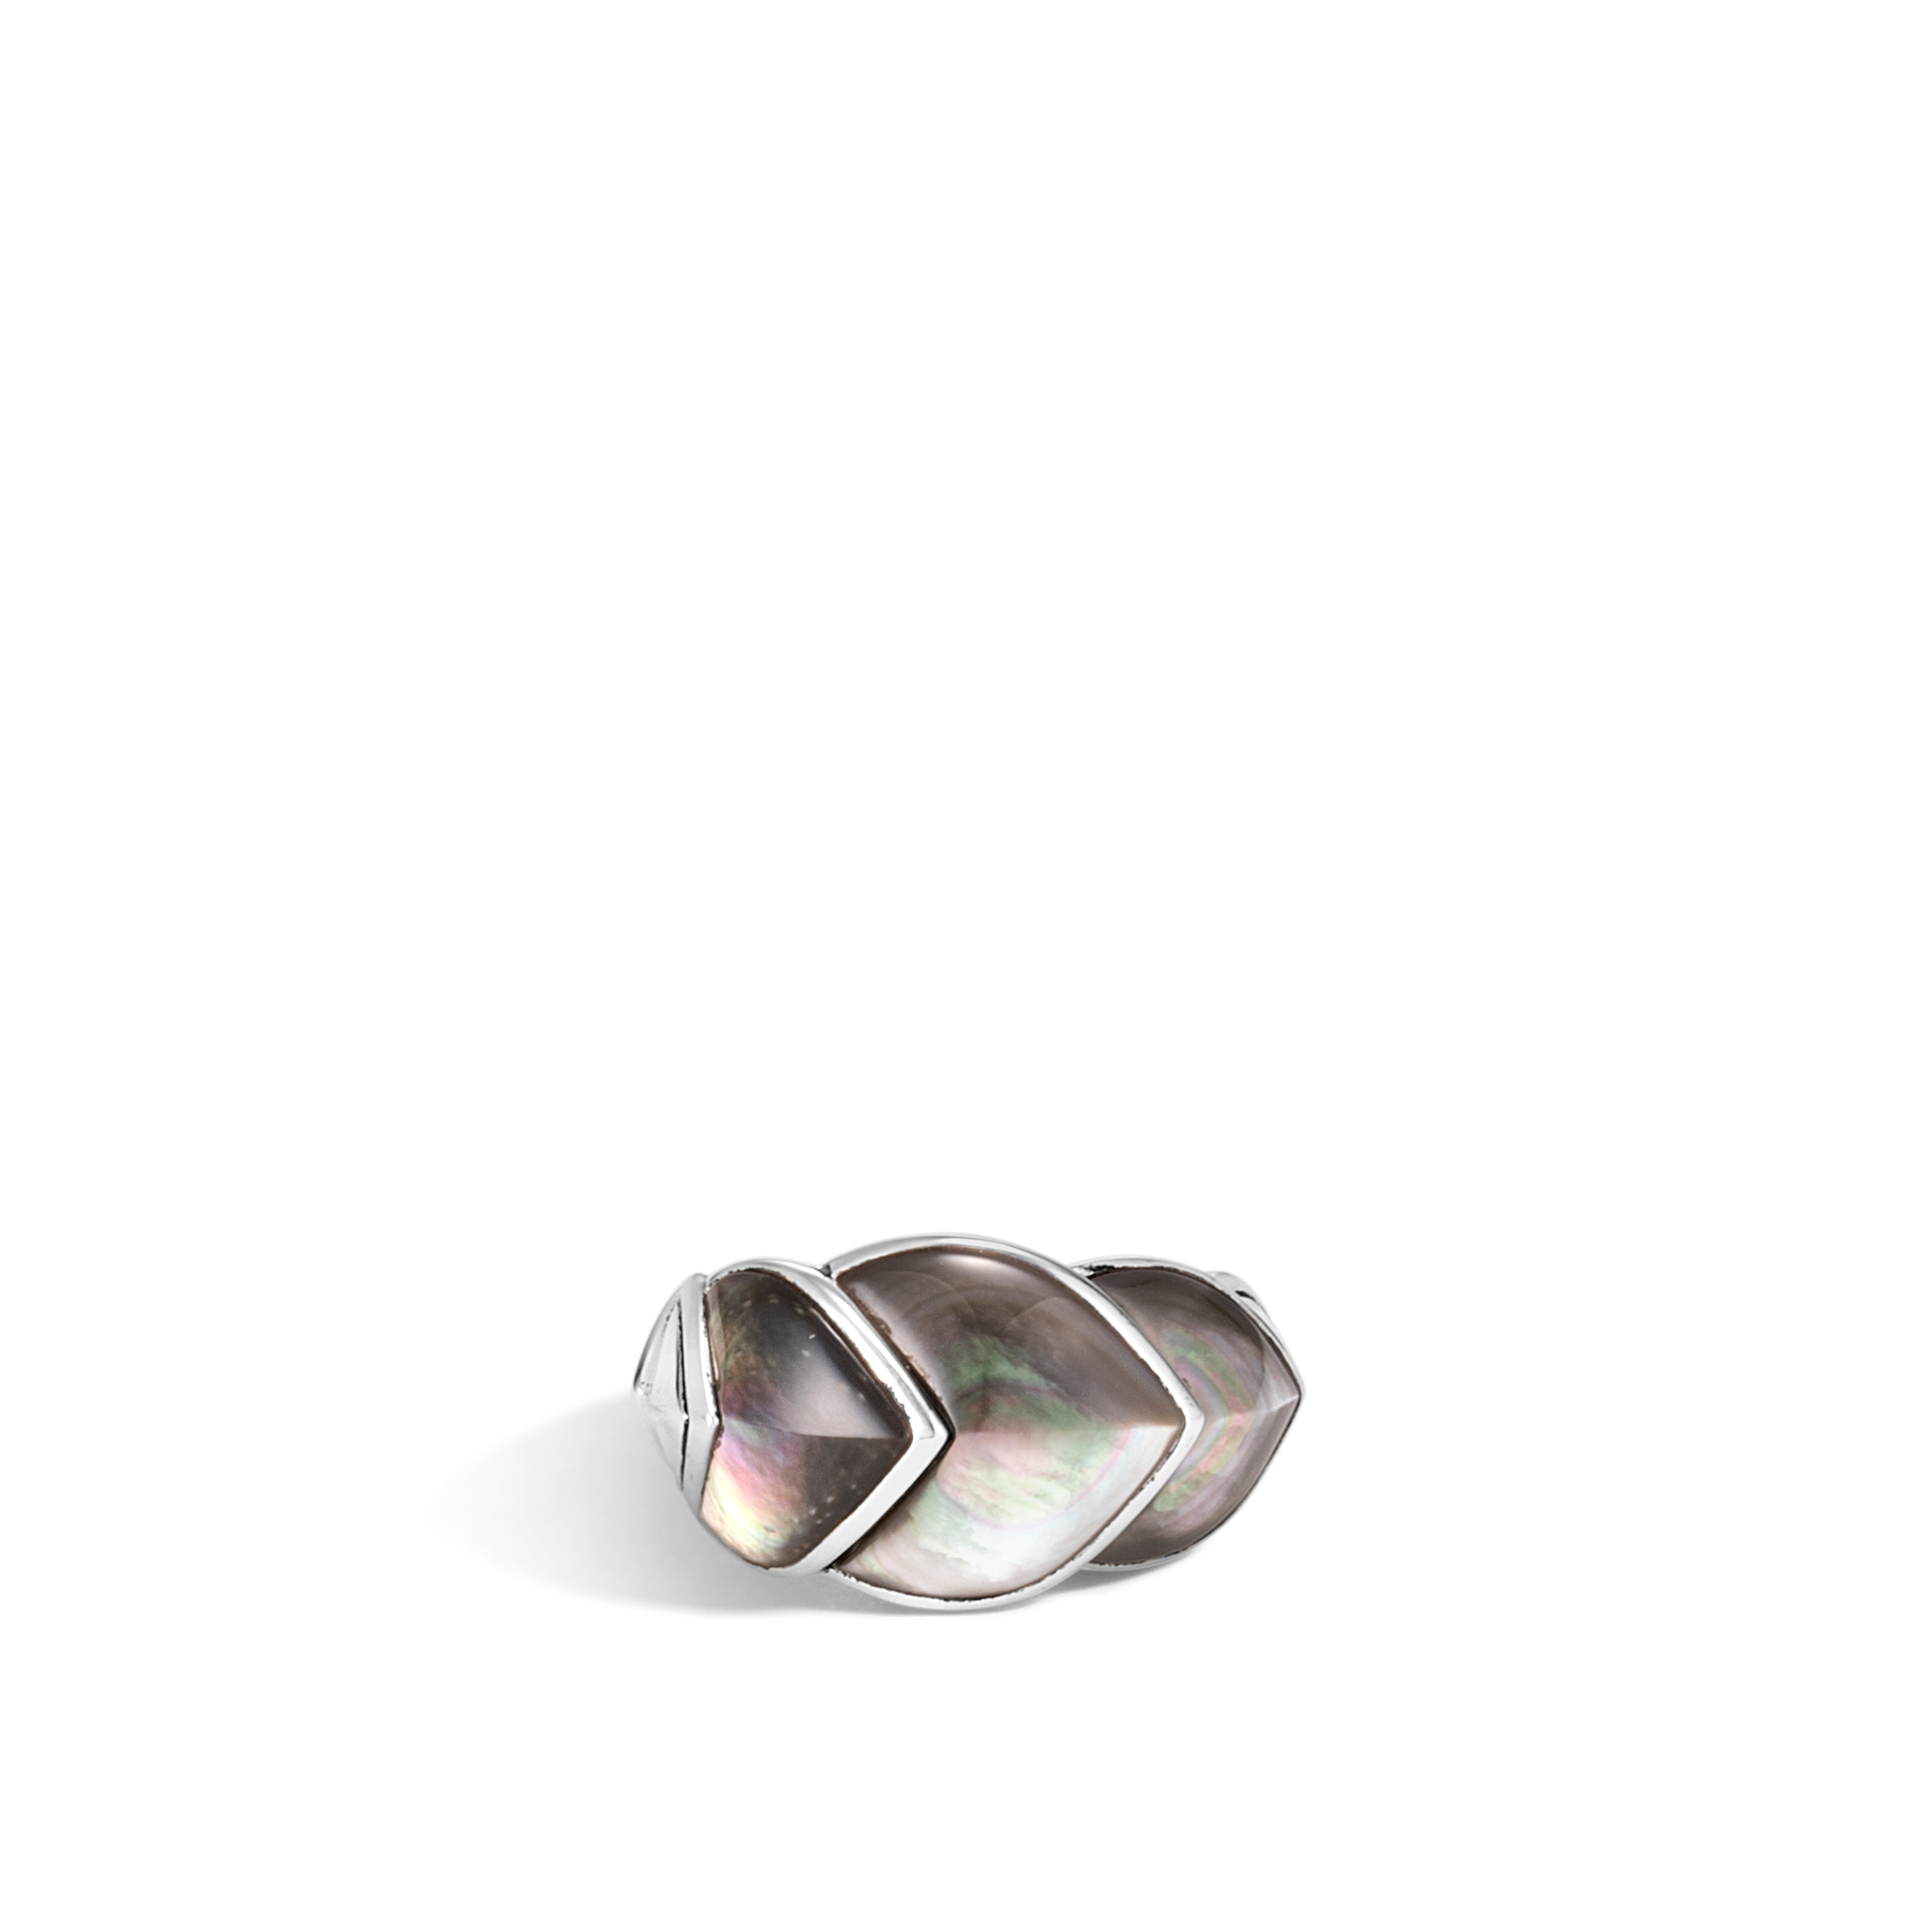 Legends Naga 15MM Ring in Silver with Gemstone, Grey Mother of Pearl, large